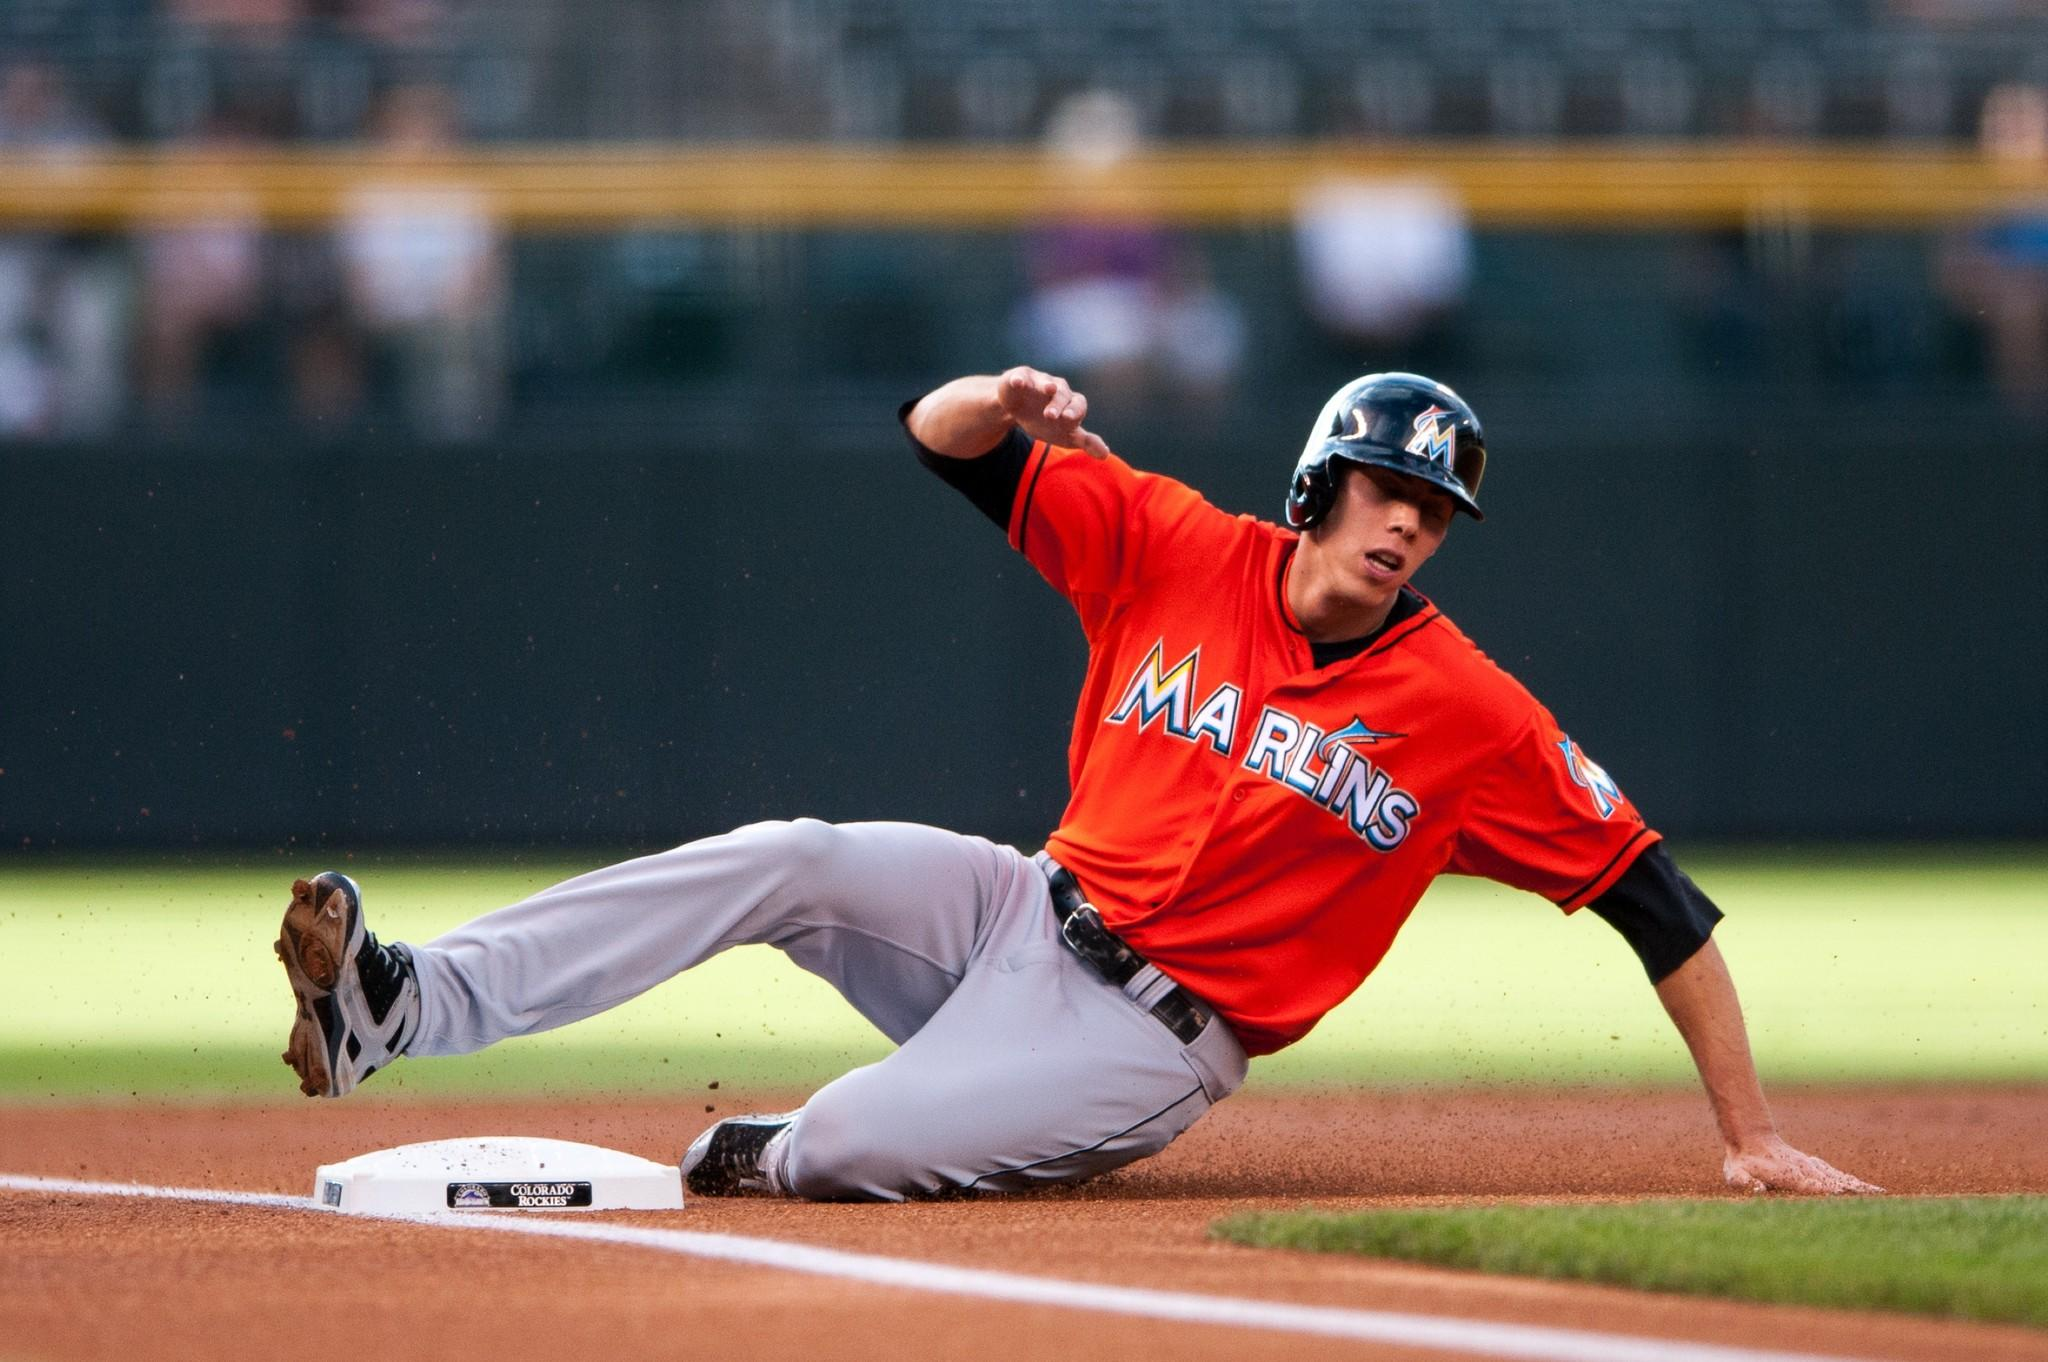 According to Baseball Info Solutions, the Miami Marlins in 2013 were among the worst base running teams in the majors.